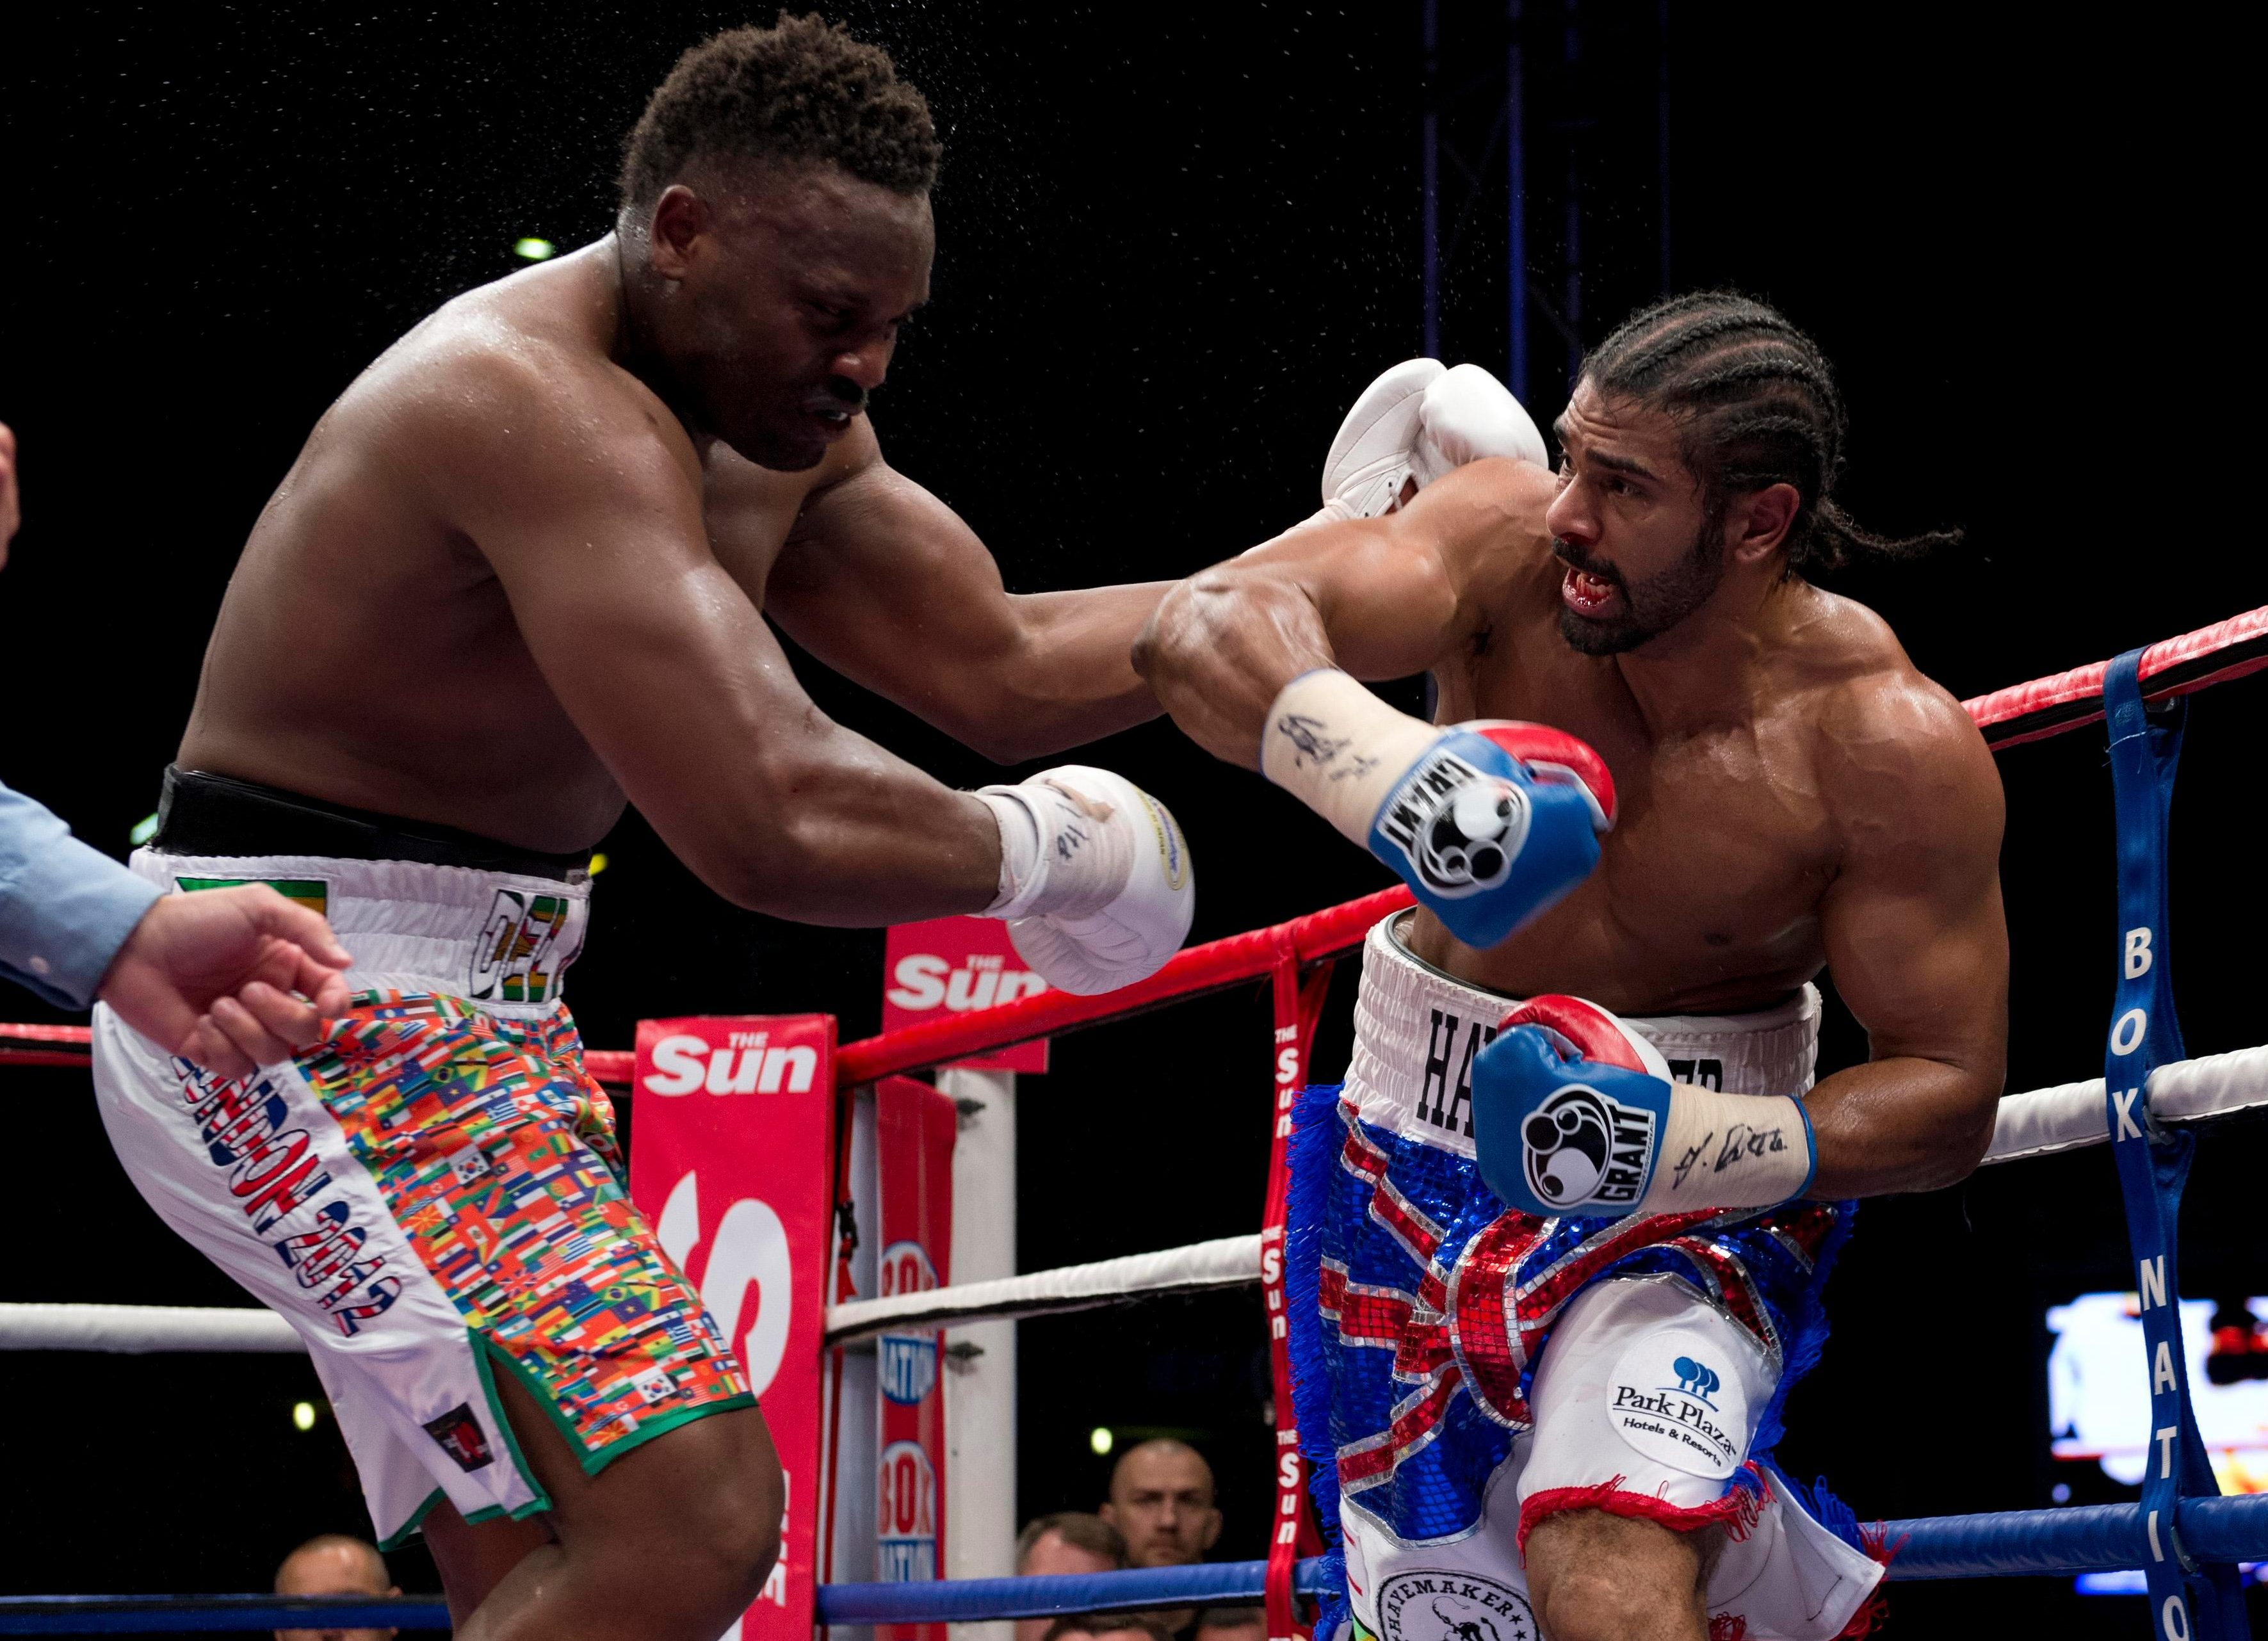 Haye beat Chisora in 2012 after a bitter rivarly - however, Hayemaker now manages Del Boy